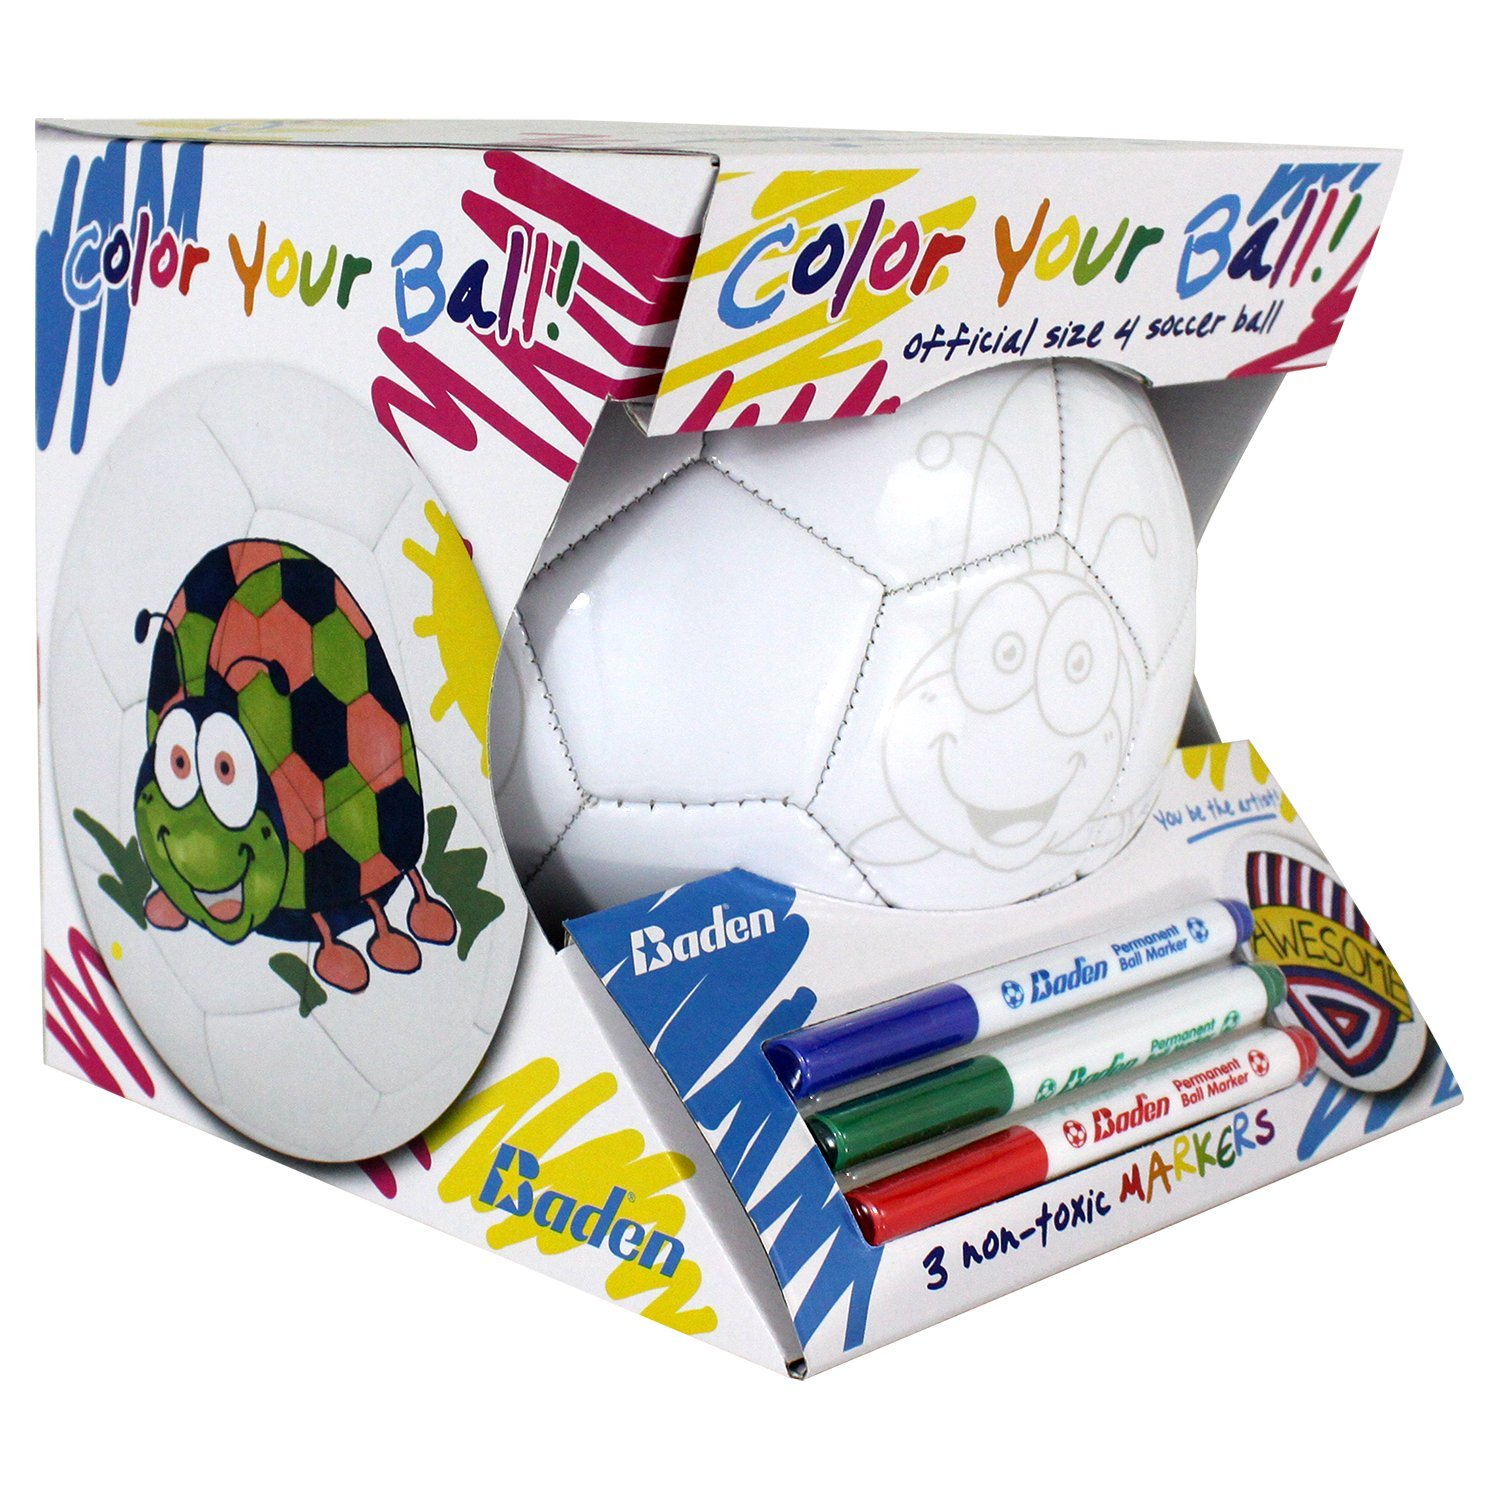 Baden Color Your Own Soccer Ball, Kids Soccer Ball w/ Colored Markers